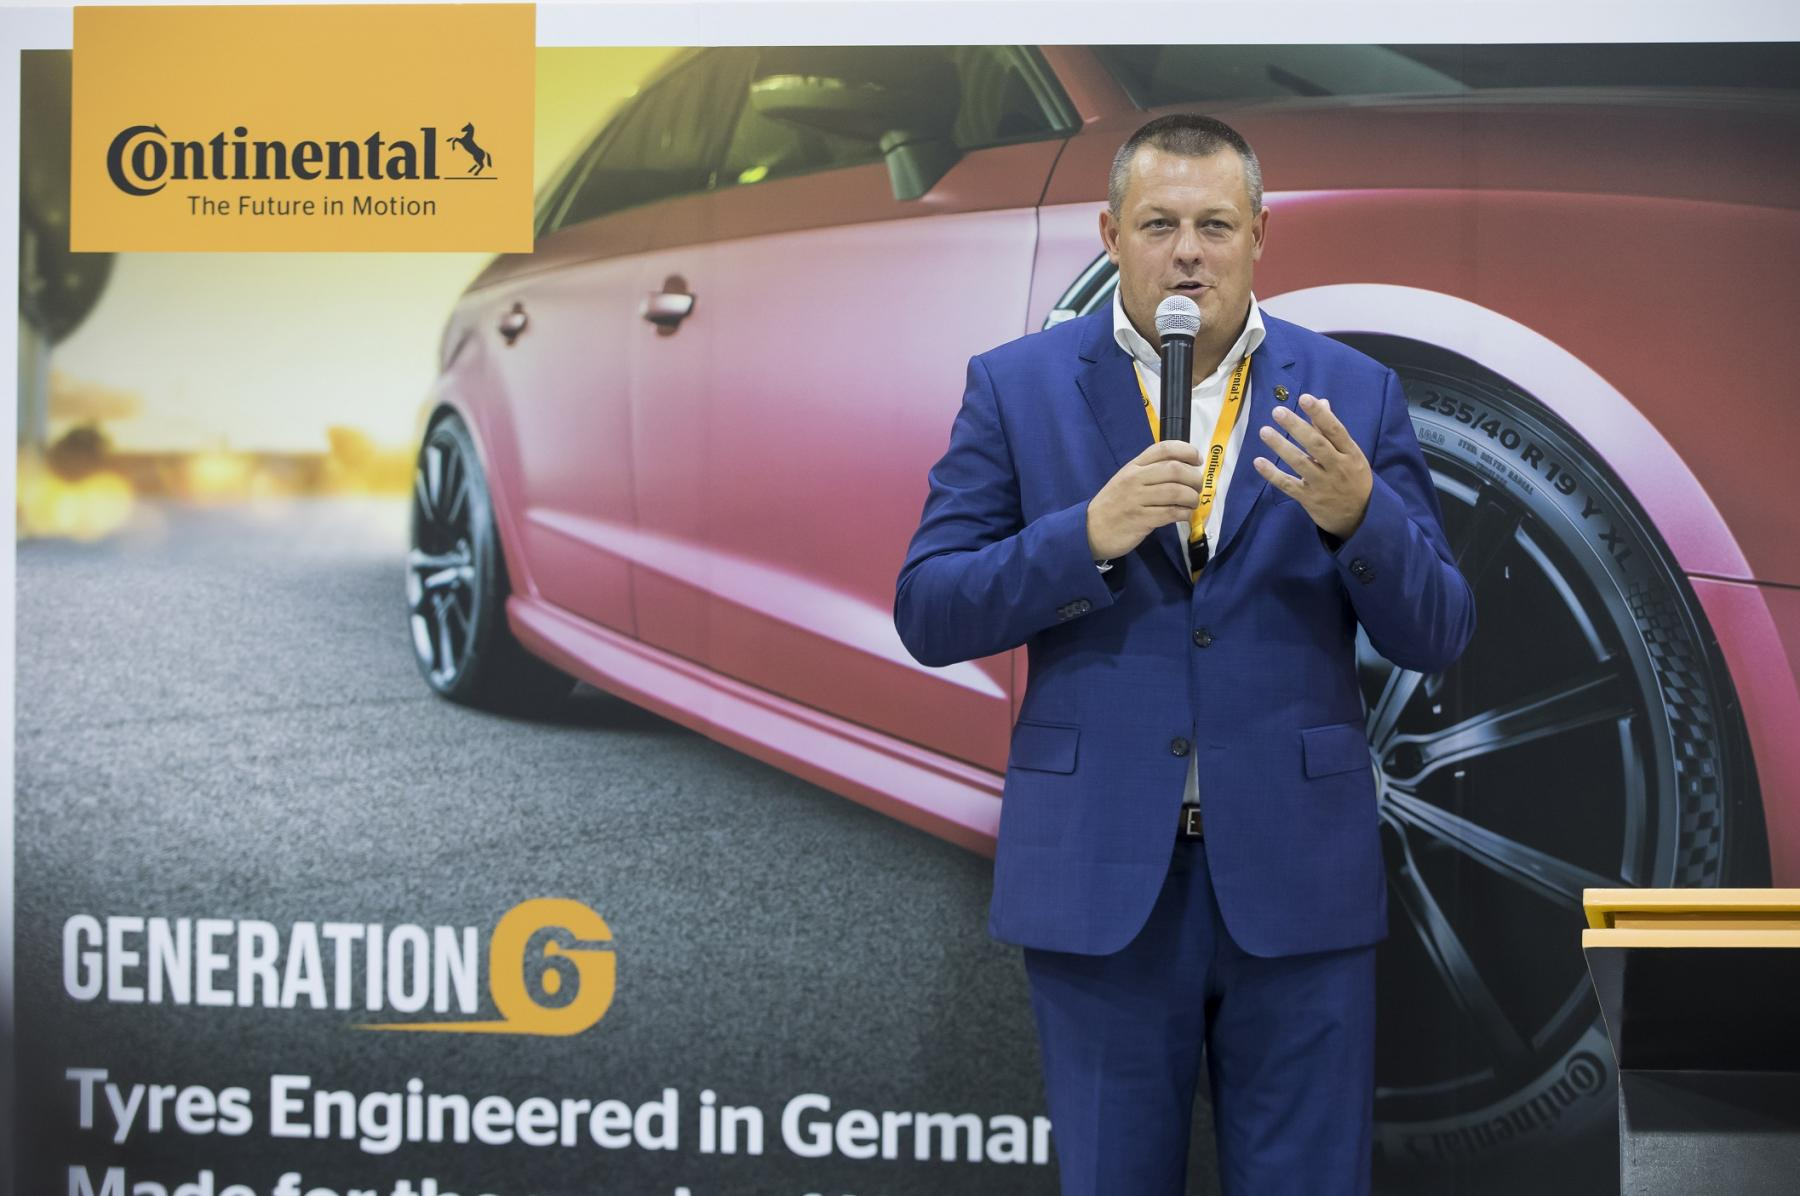 Karel Kucera, Managing Director of Continental Middle East